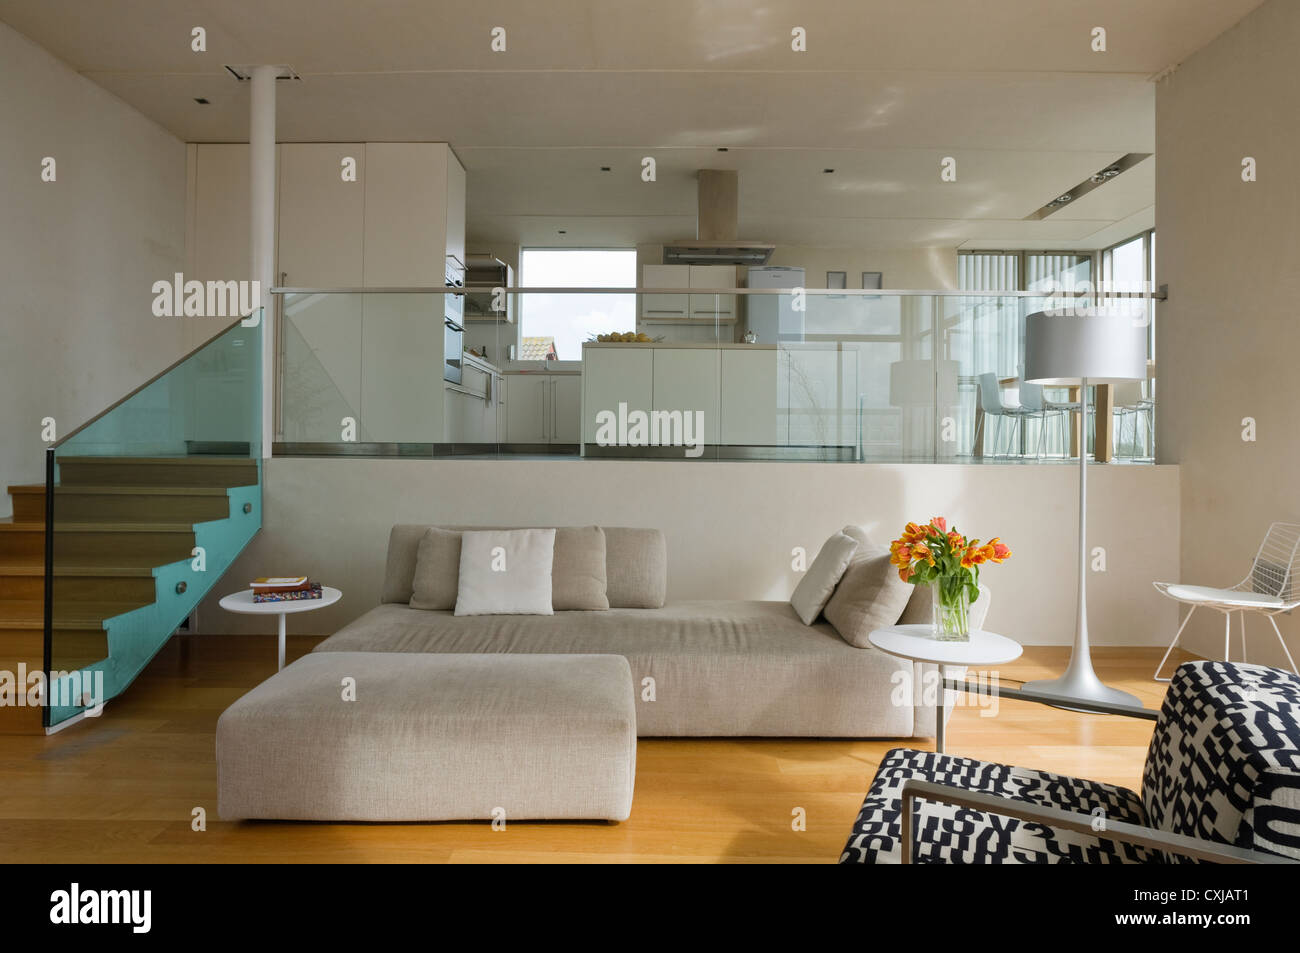 Split level open plan living room and kitchen stock photo for Split level open floor plan remodel